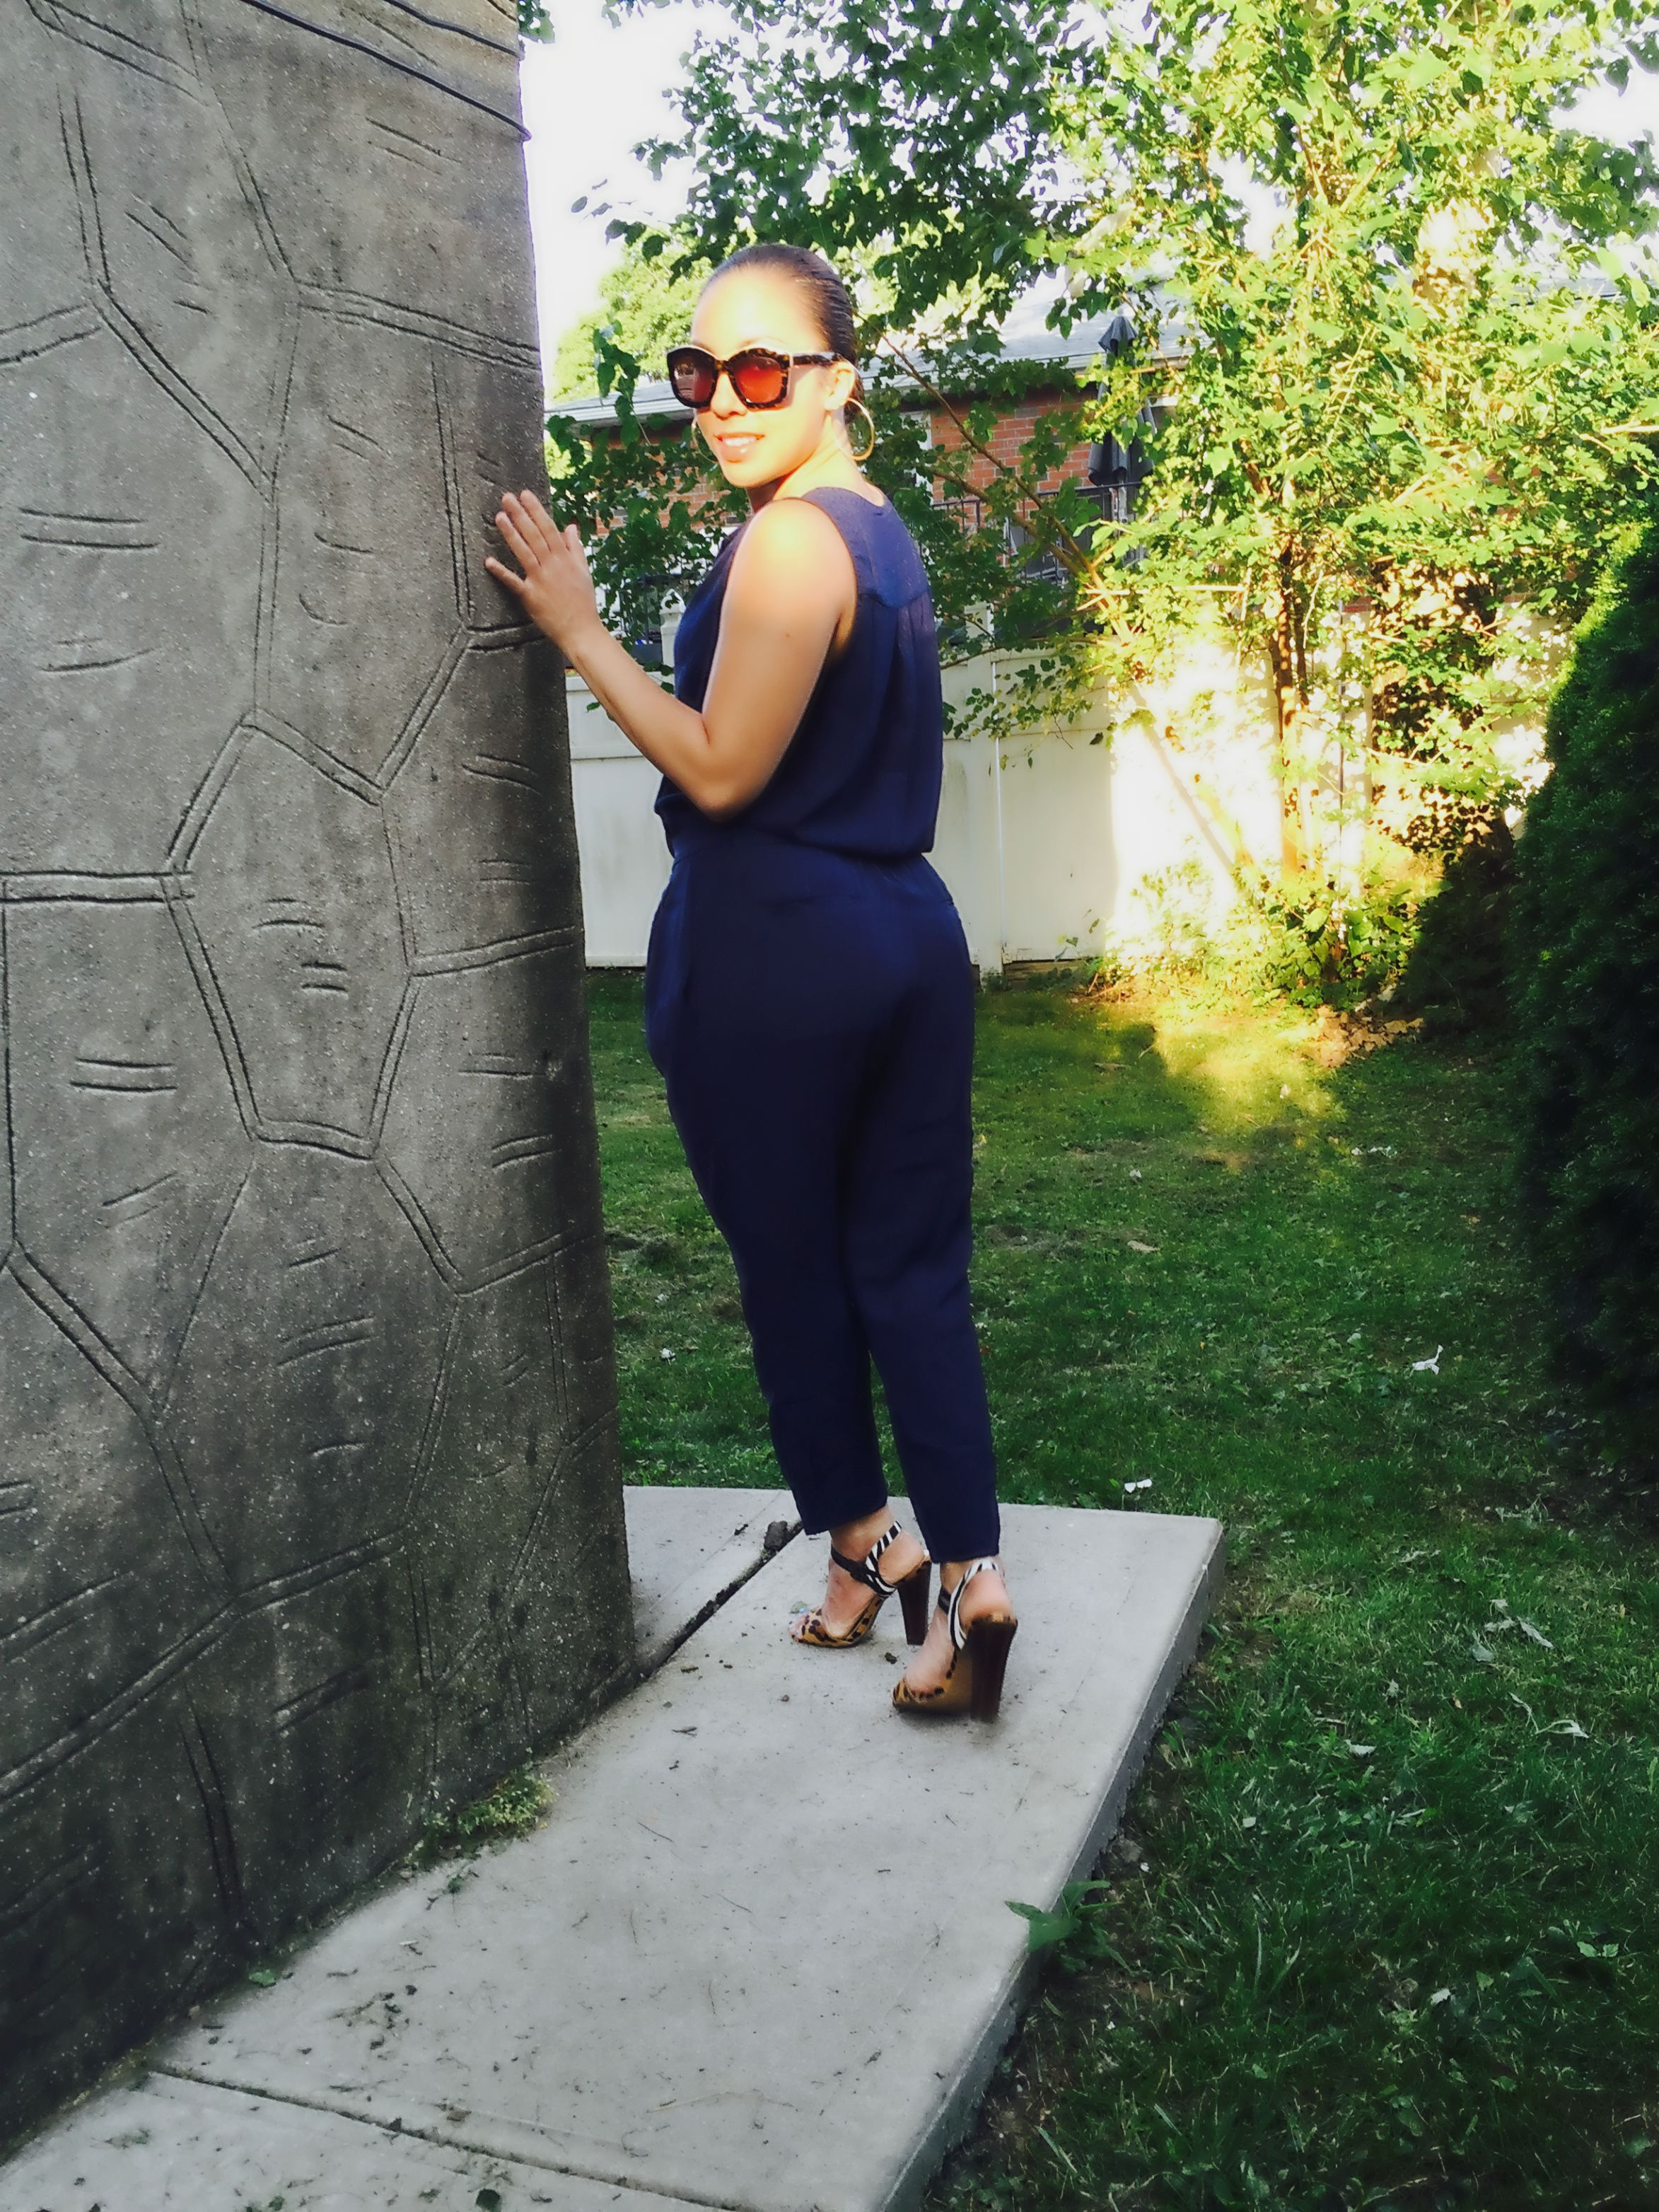 Herringbone Crepe Jumpsuit  (available in the color pale mauve)  |  Heels  | Le Spec Sunglasses (similar  here ) | Earrings